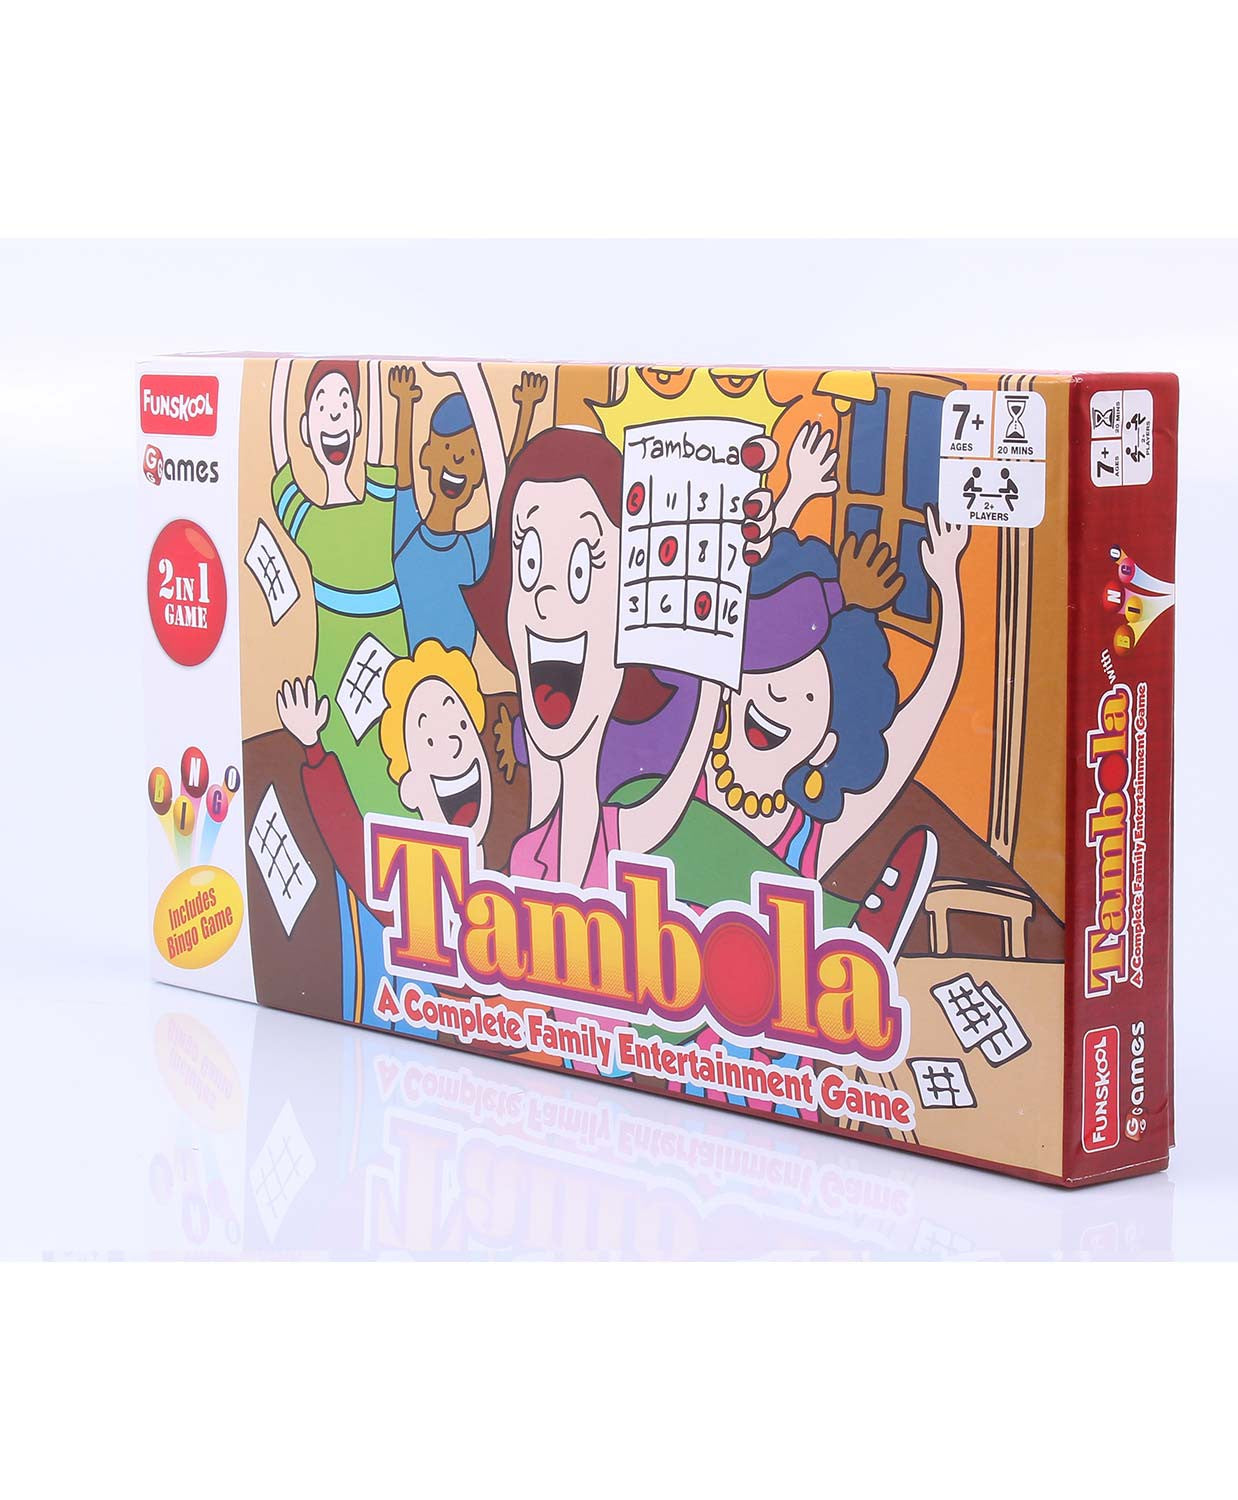 Funskool Thambola 2 In 1 Game 2013